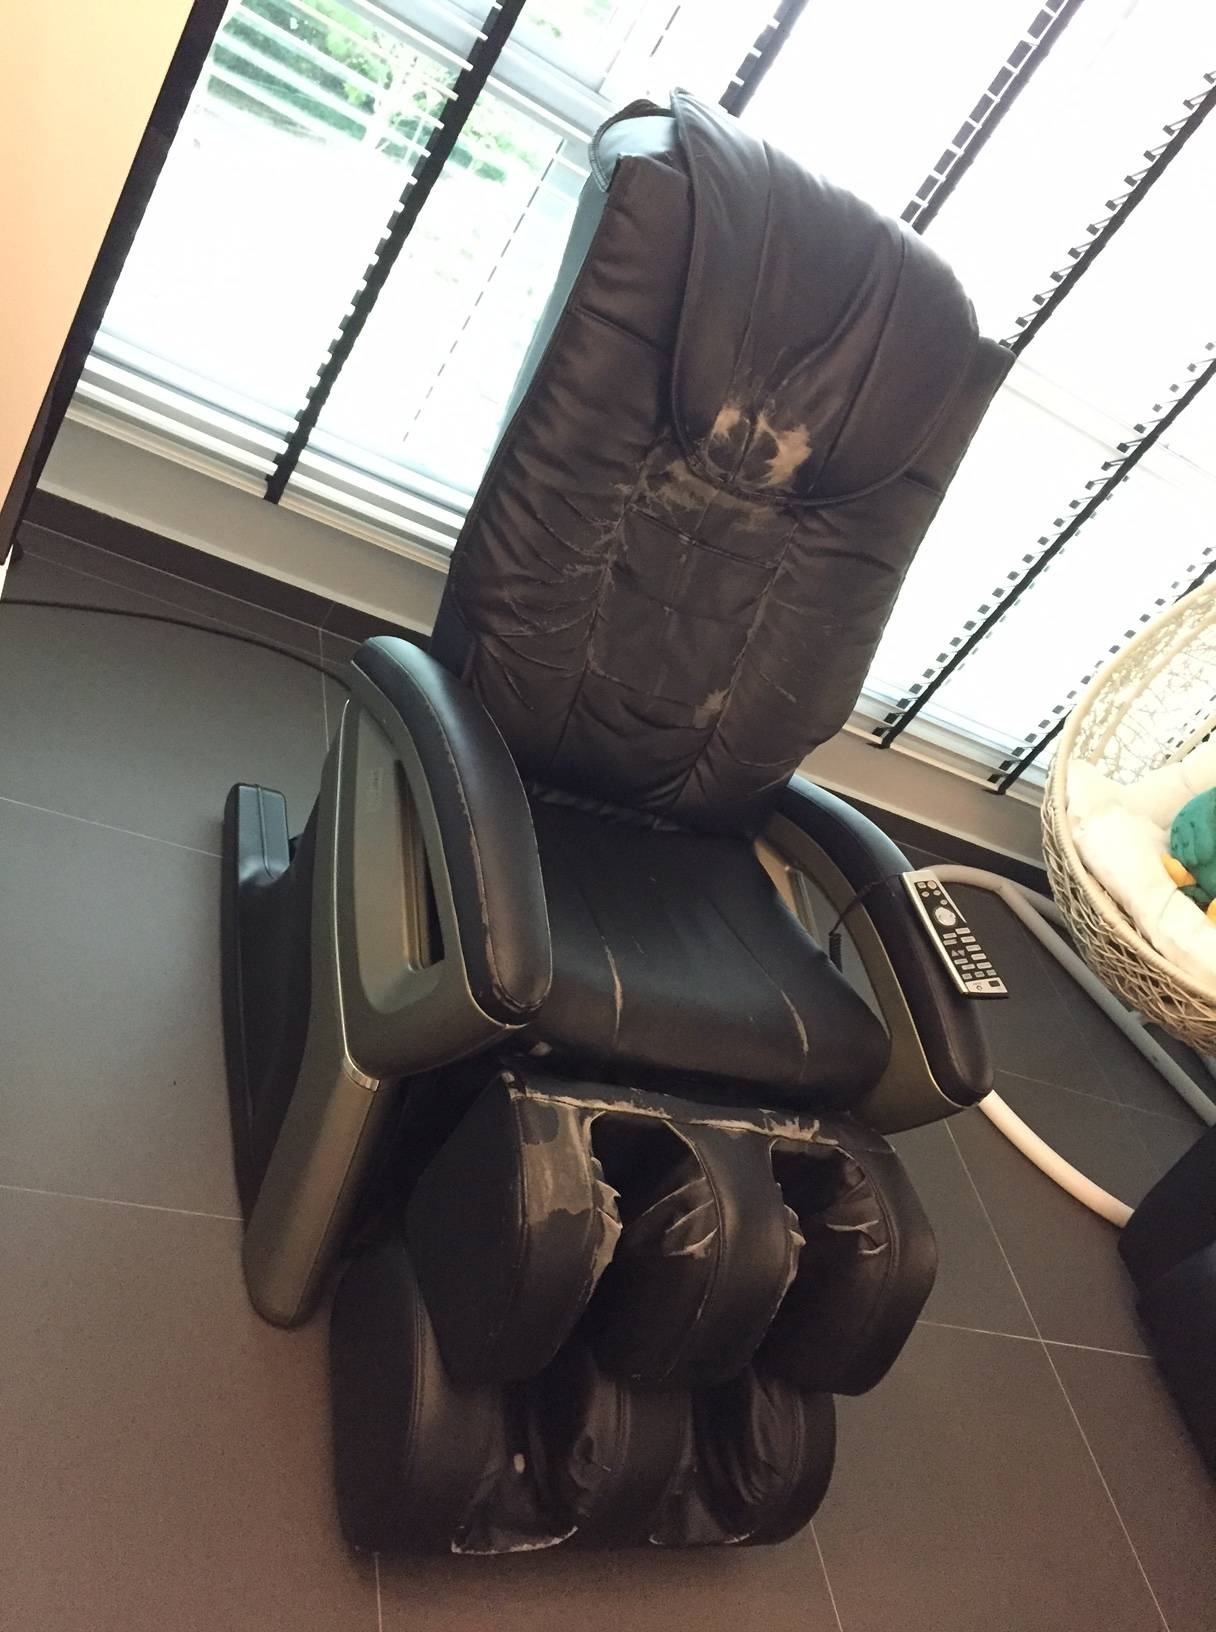 WTS used OGAWA massage chair